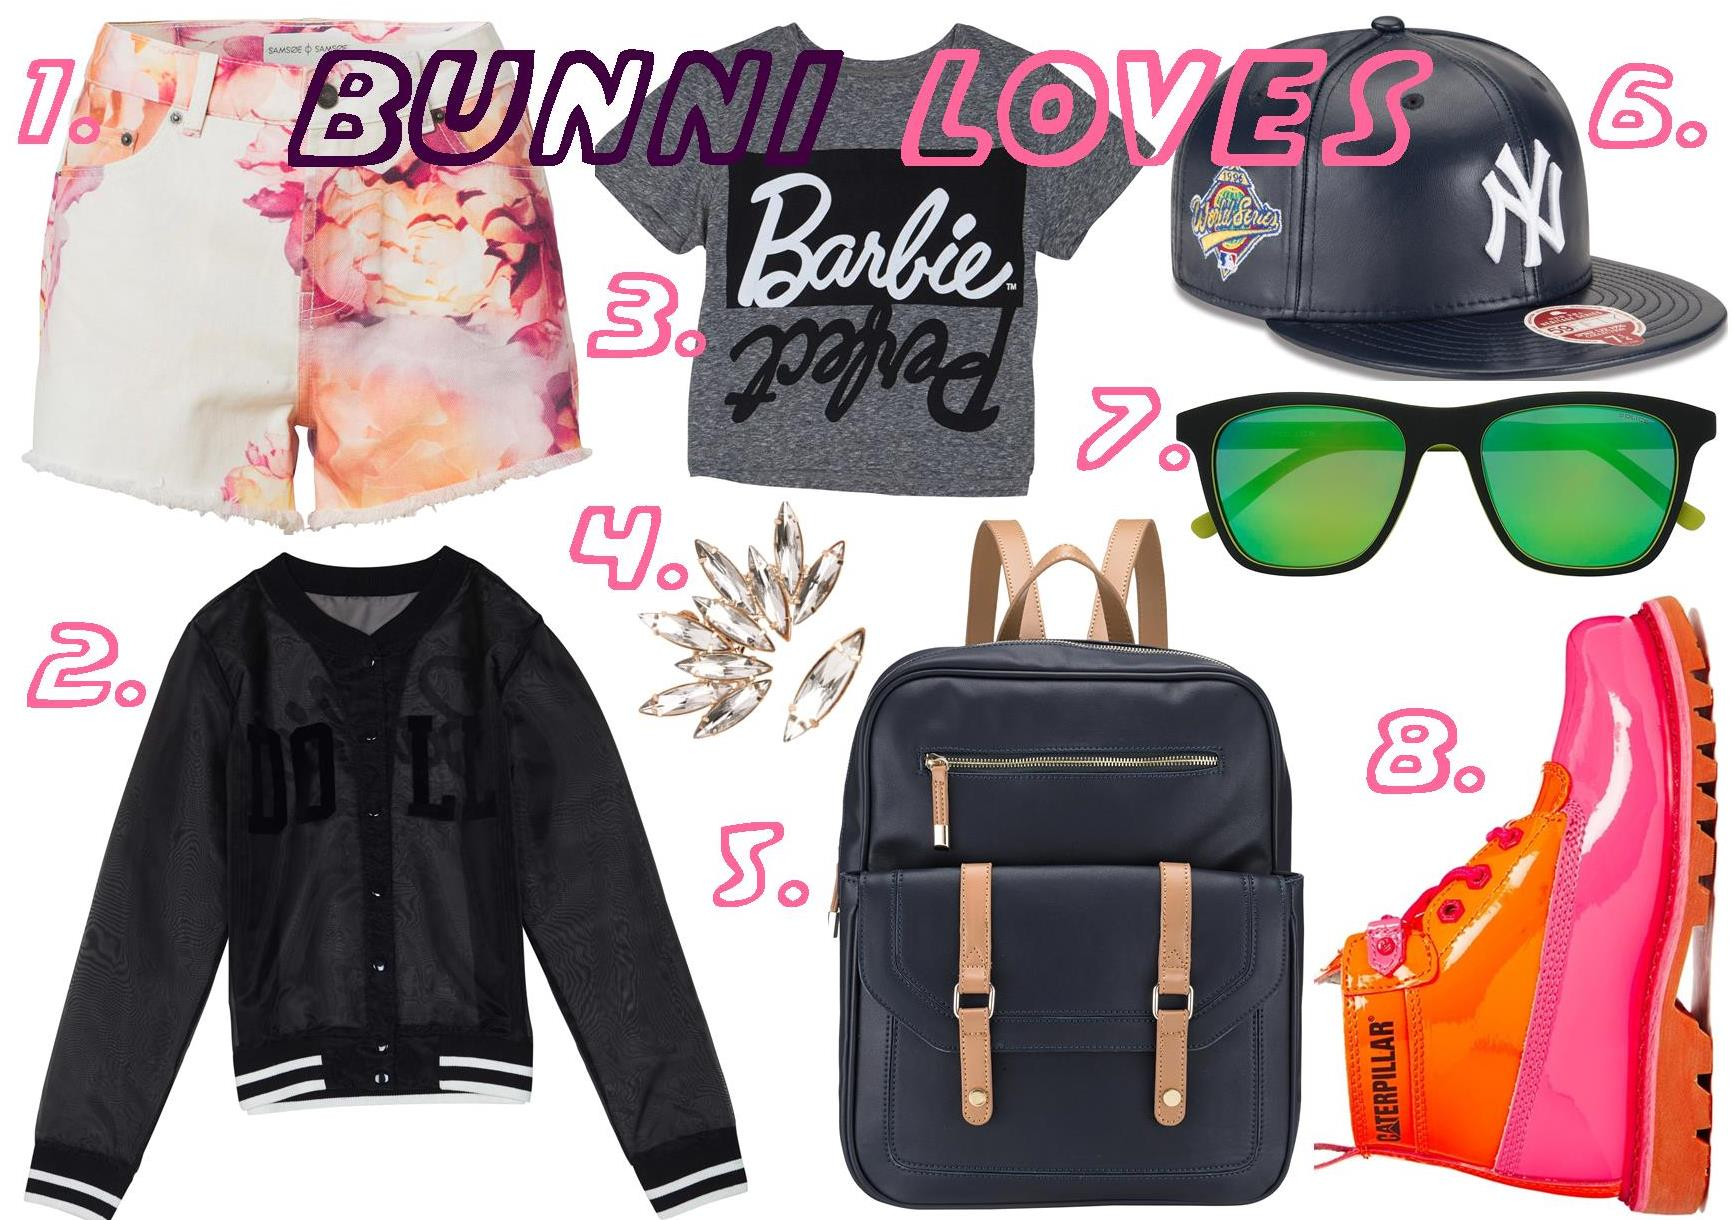 Bunni loves September 2014